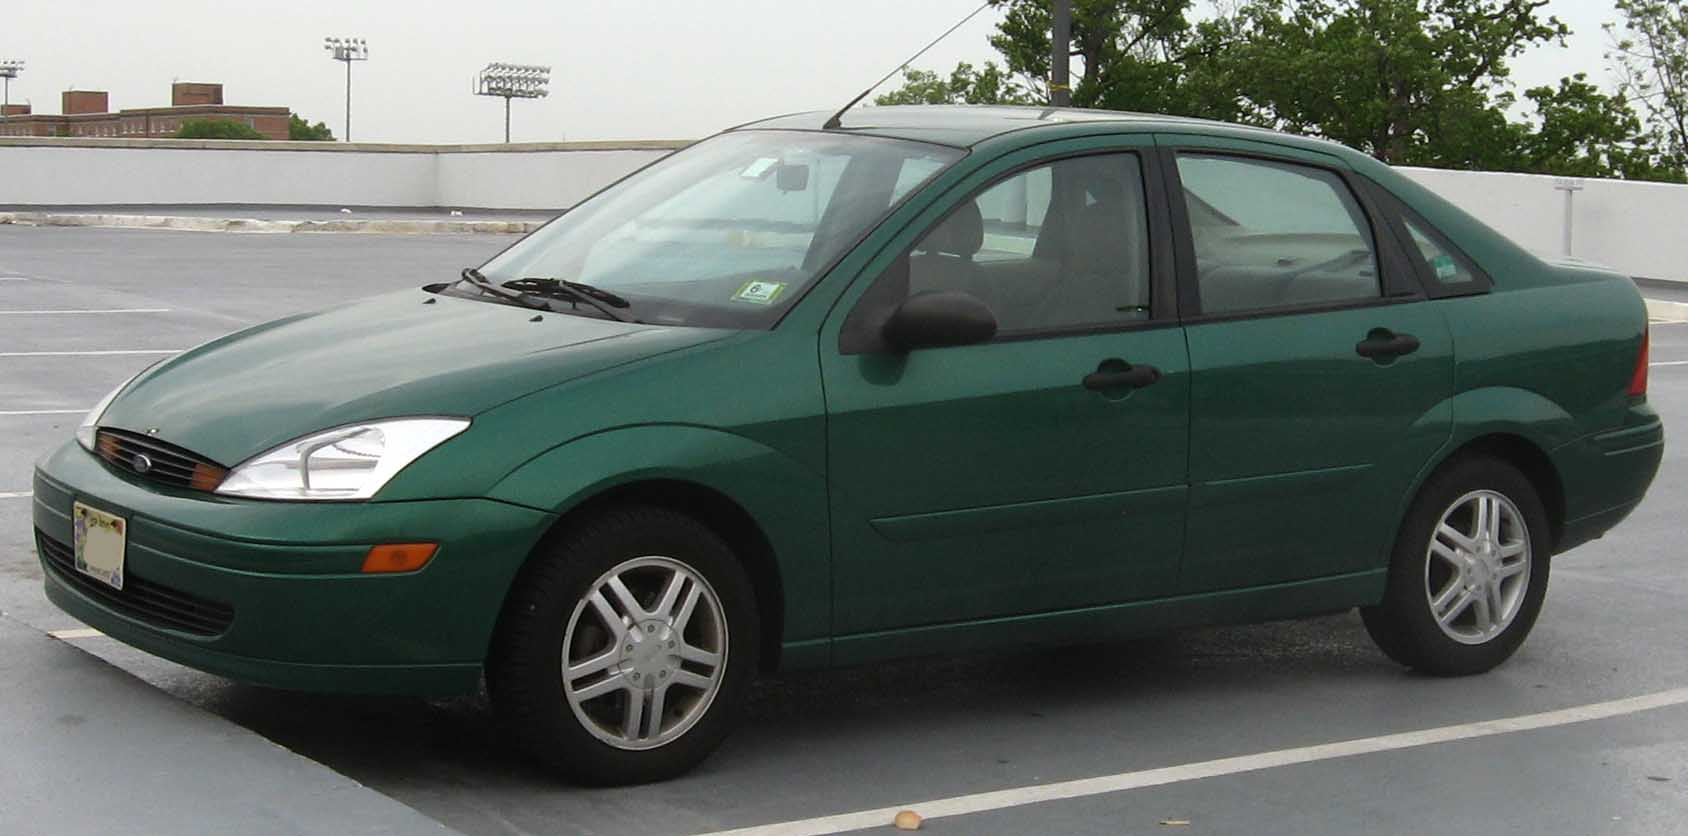 Download ford focus 2004 8 jpg